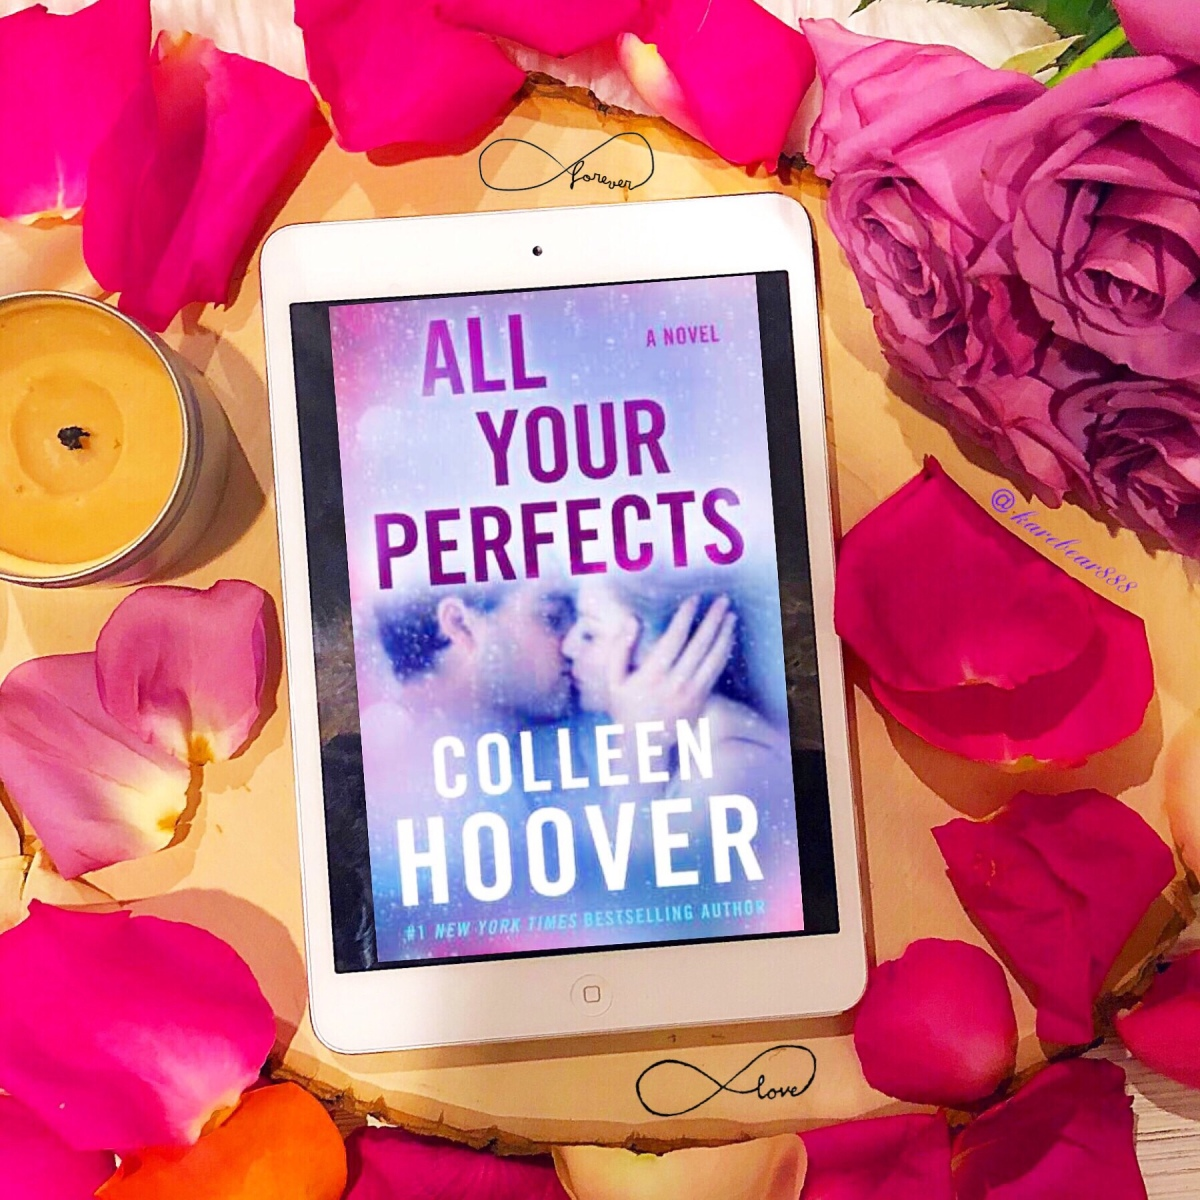 Review - All Your Perfects by Colleen Hoover